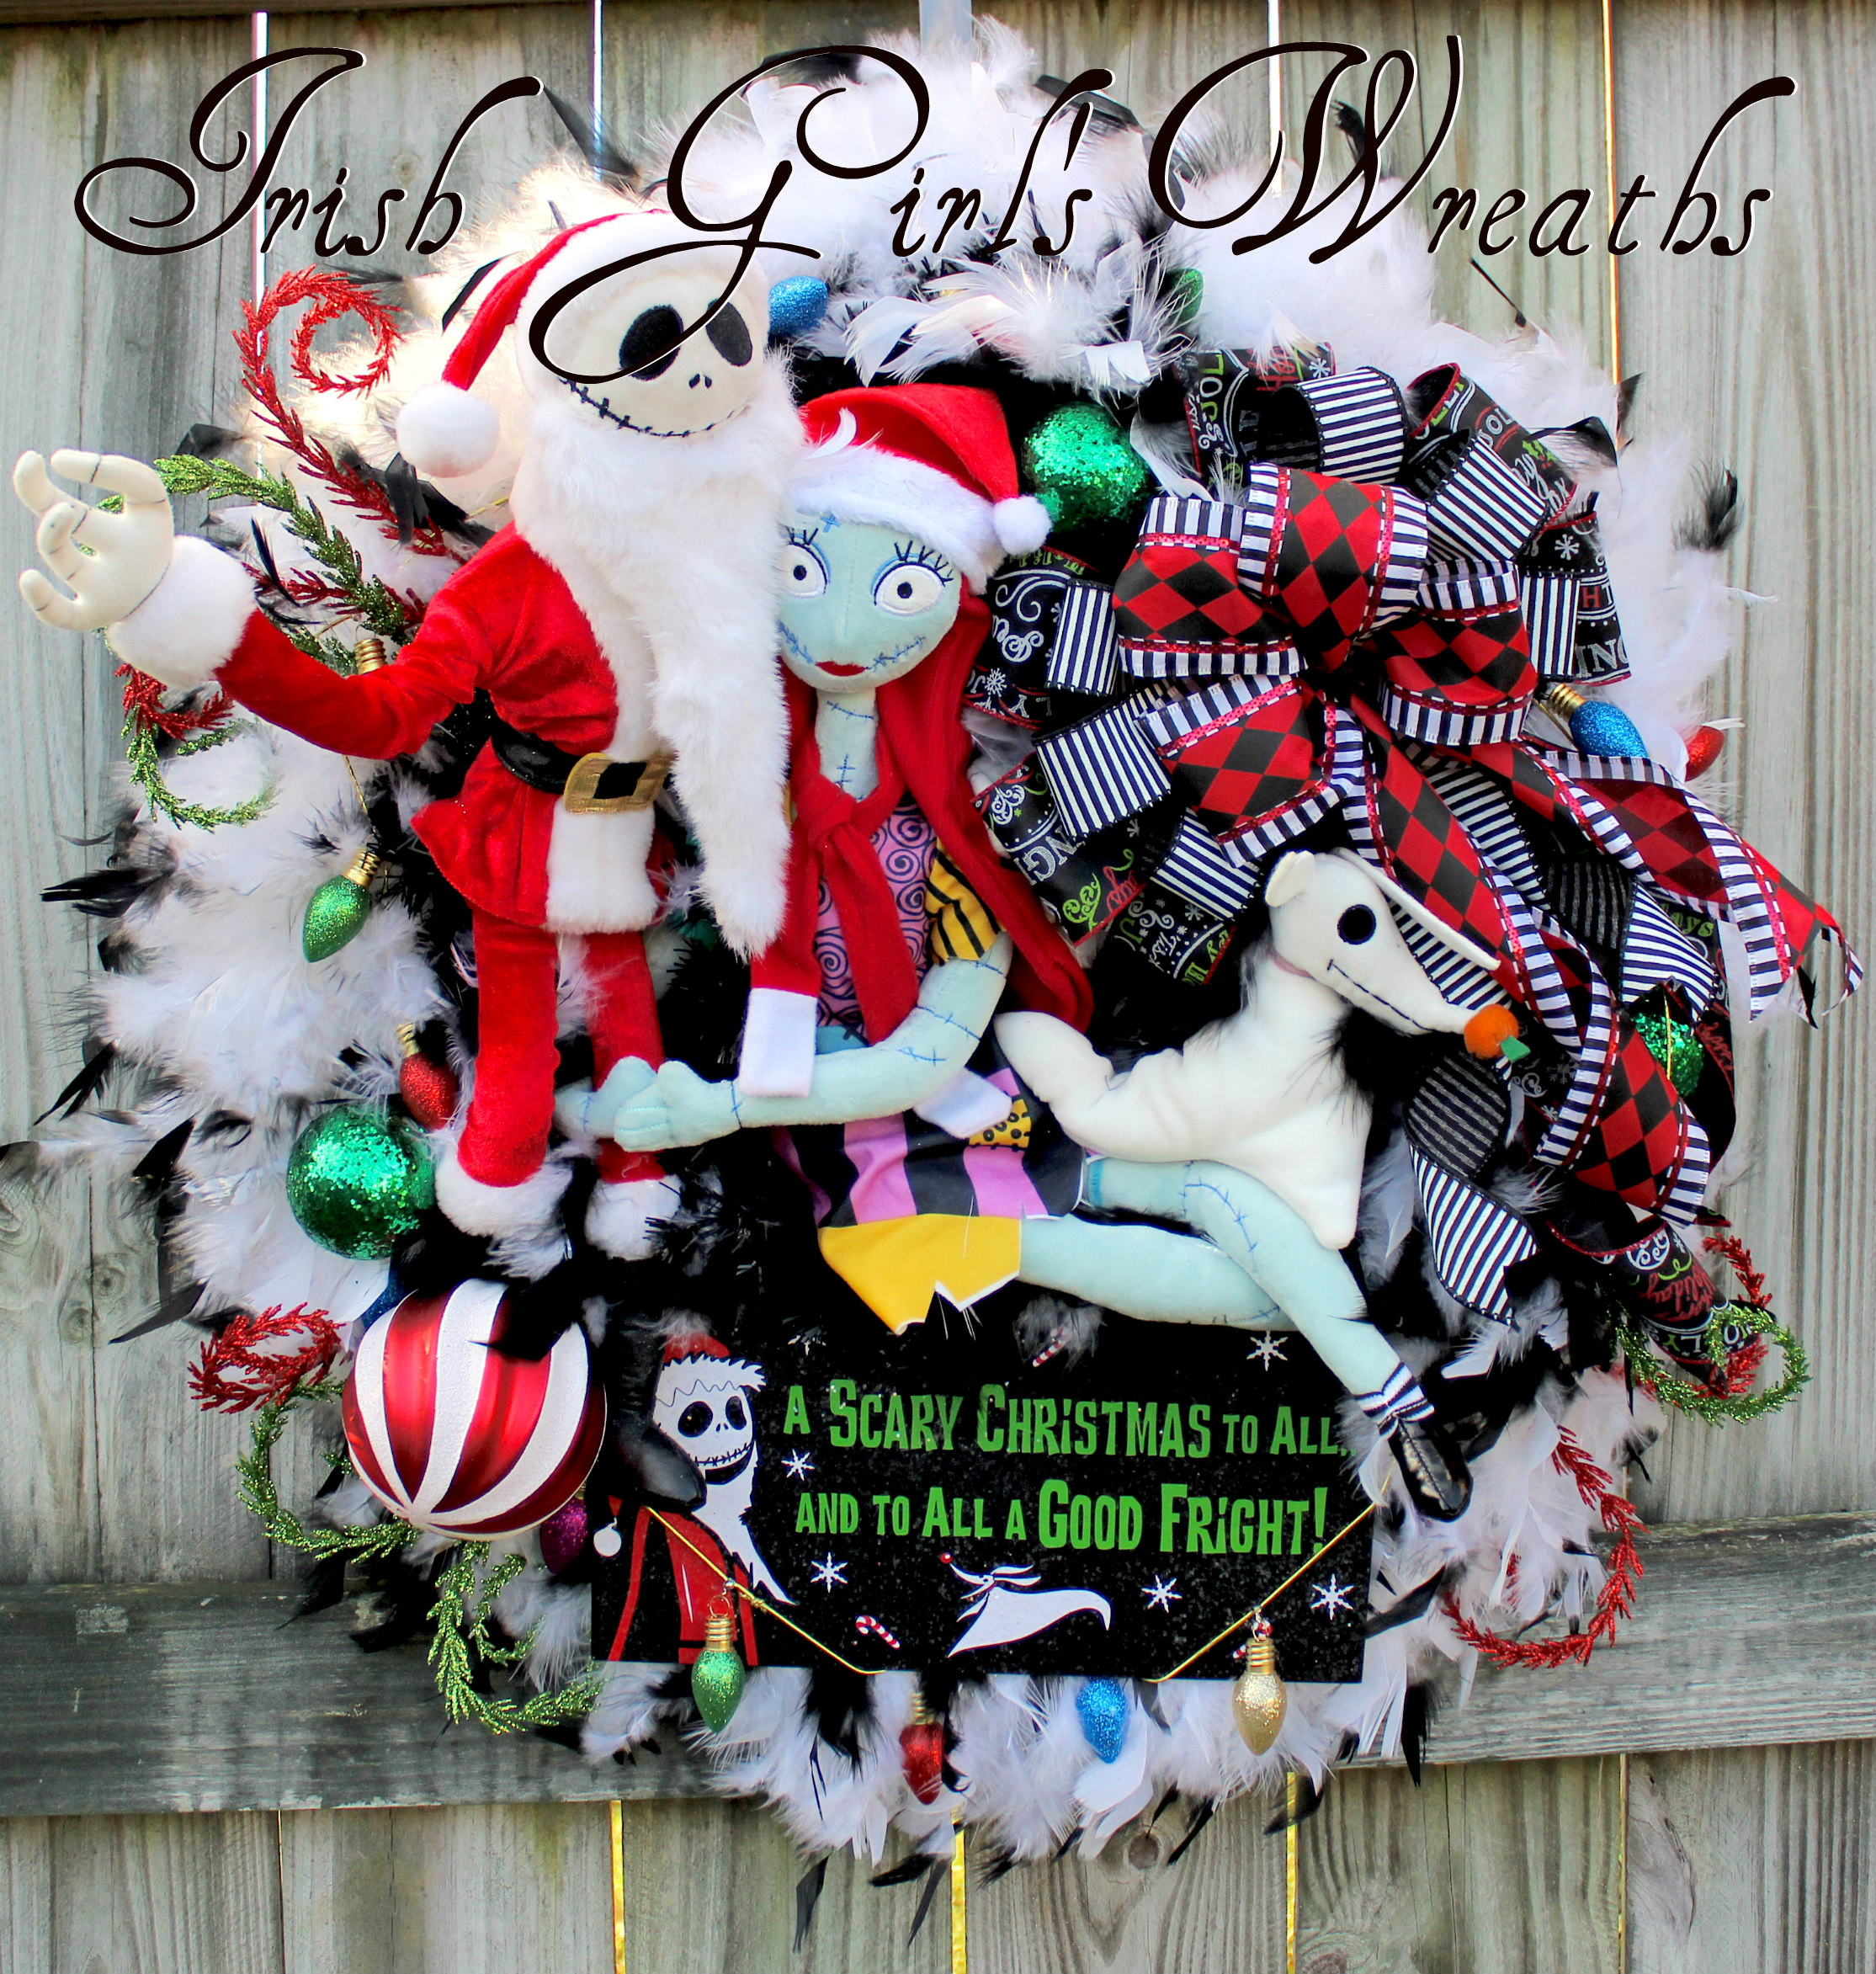 Sandy Claws Wreath, Deluxe Nightmare Before Christmas Wreath, Jack Skellington Wreath, Sally Zero Jack Skellington Wreath, Sandy Claws NBXmas